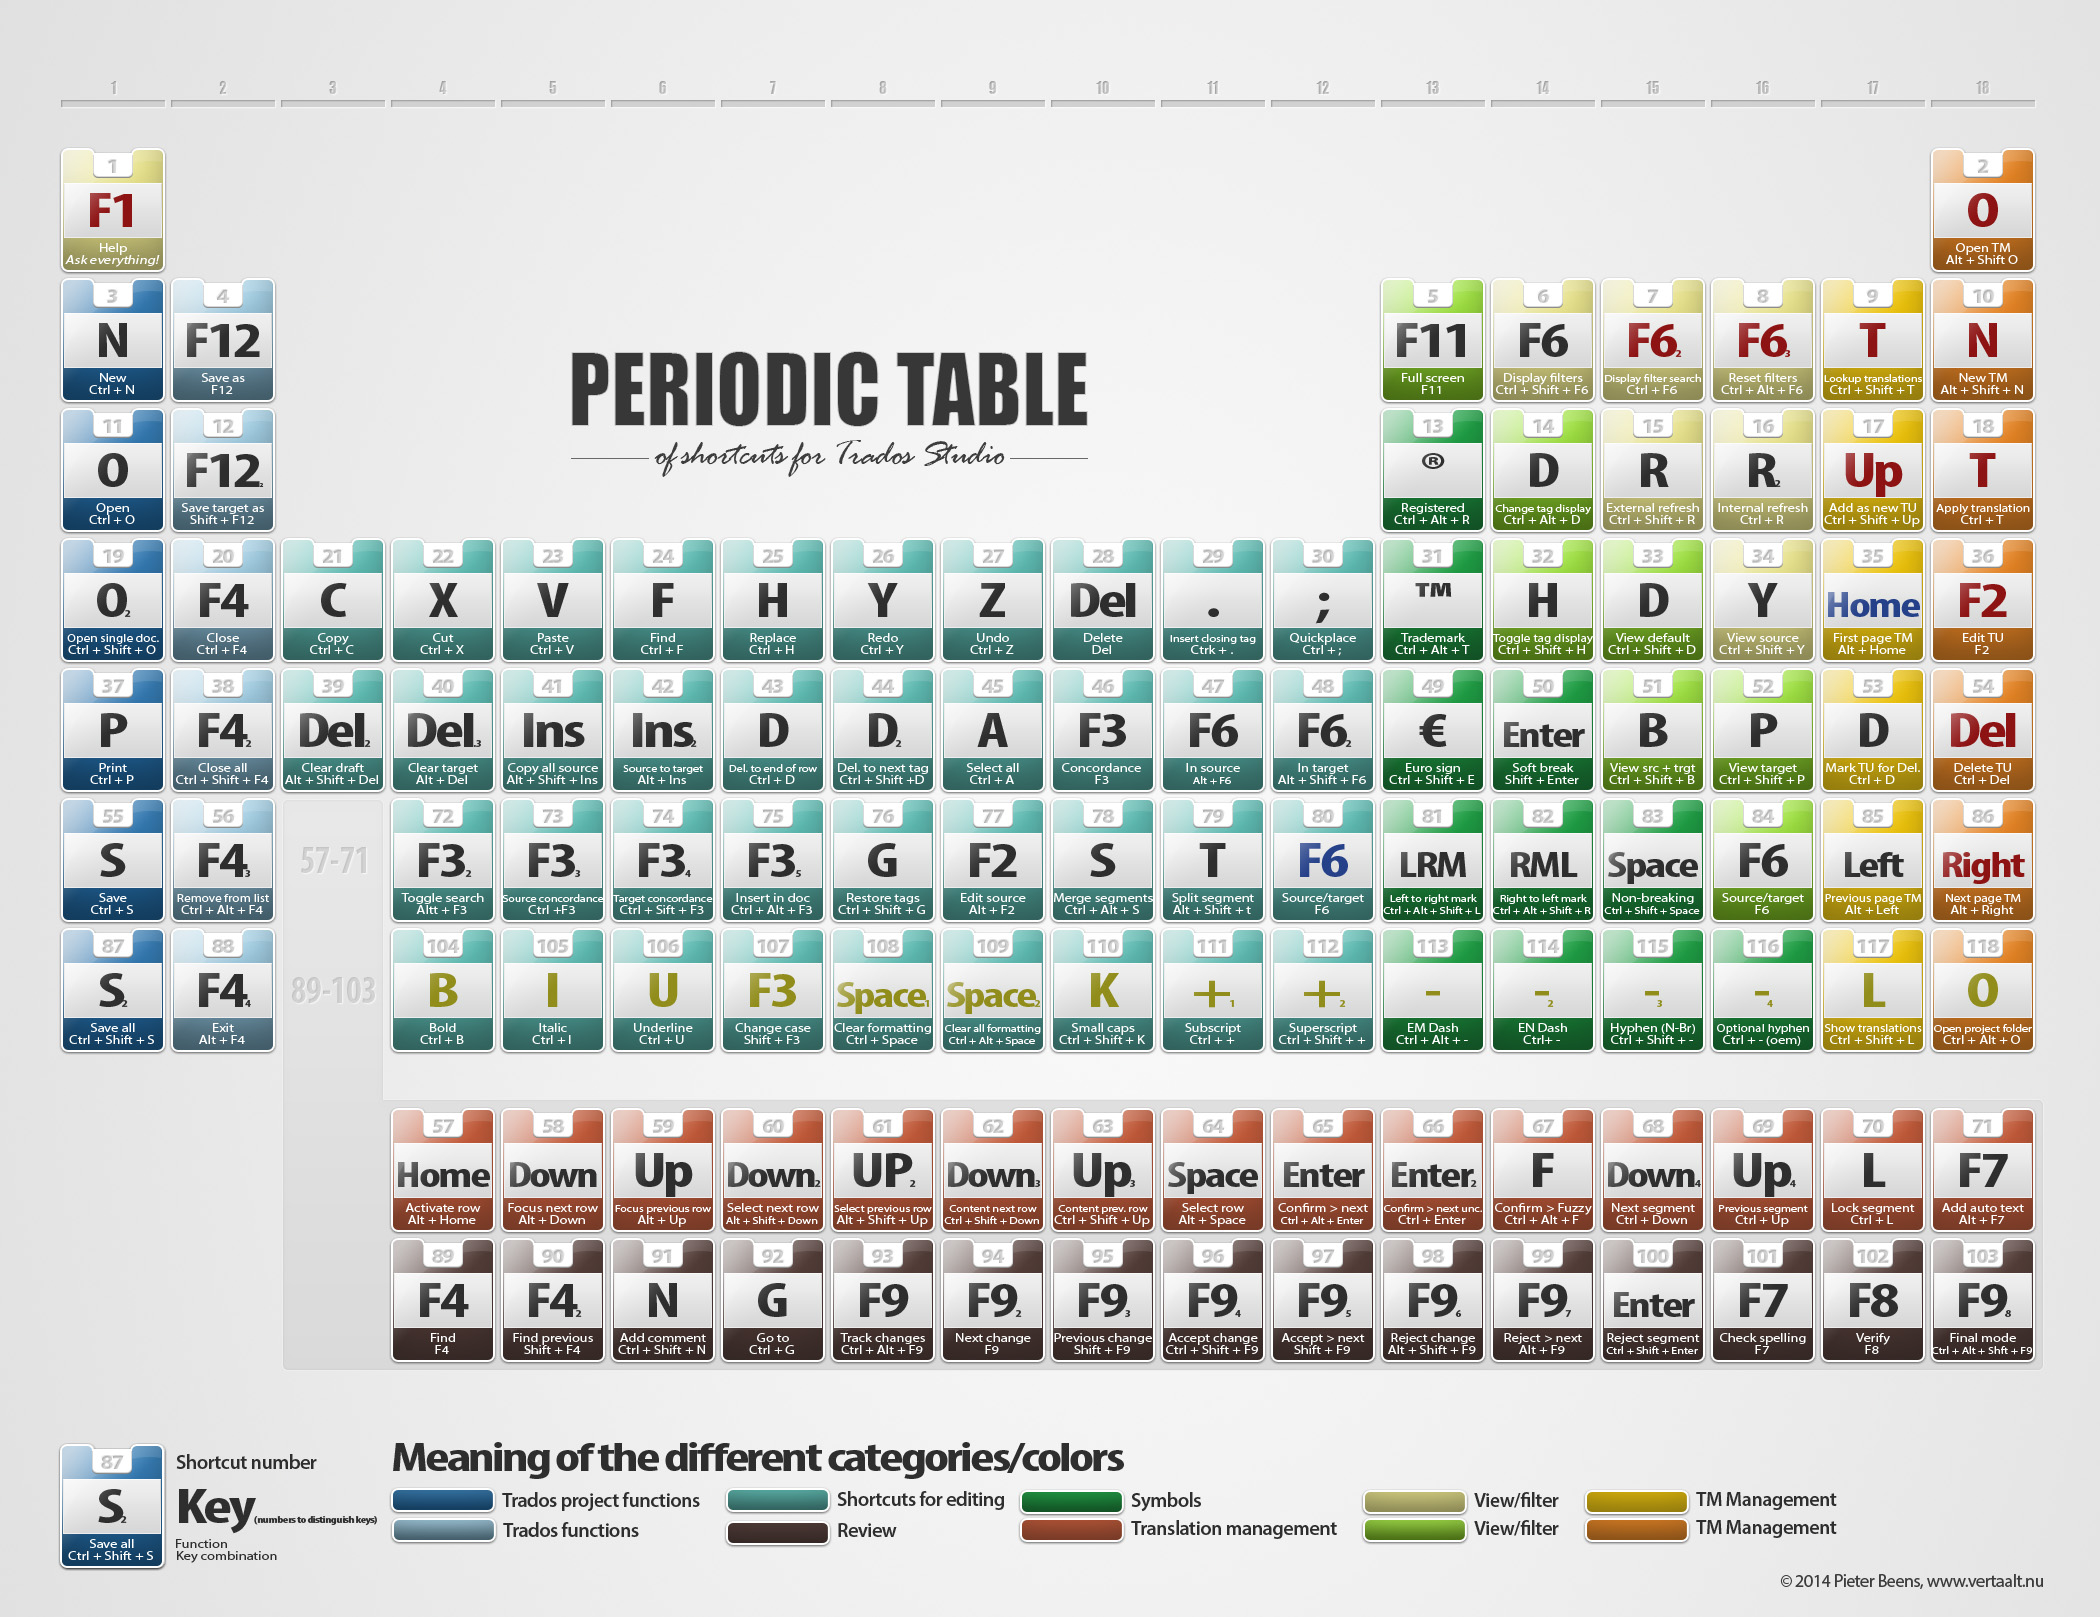 The periodic table of trados shortcuts trados studios 20112014 download the periodic table urtaz